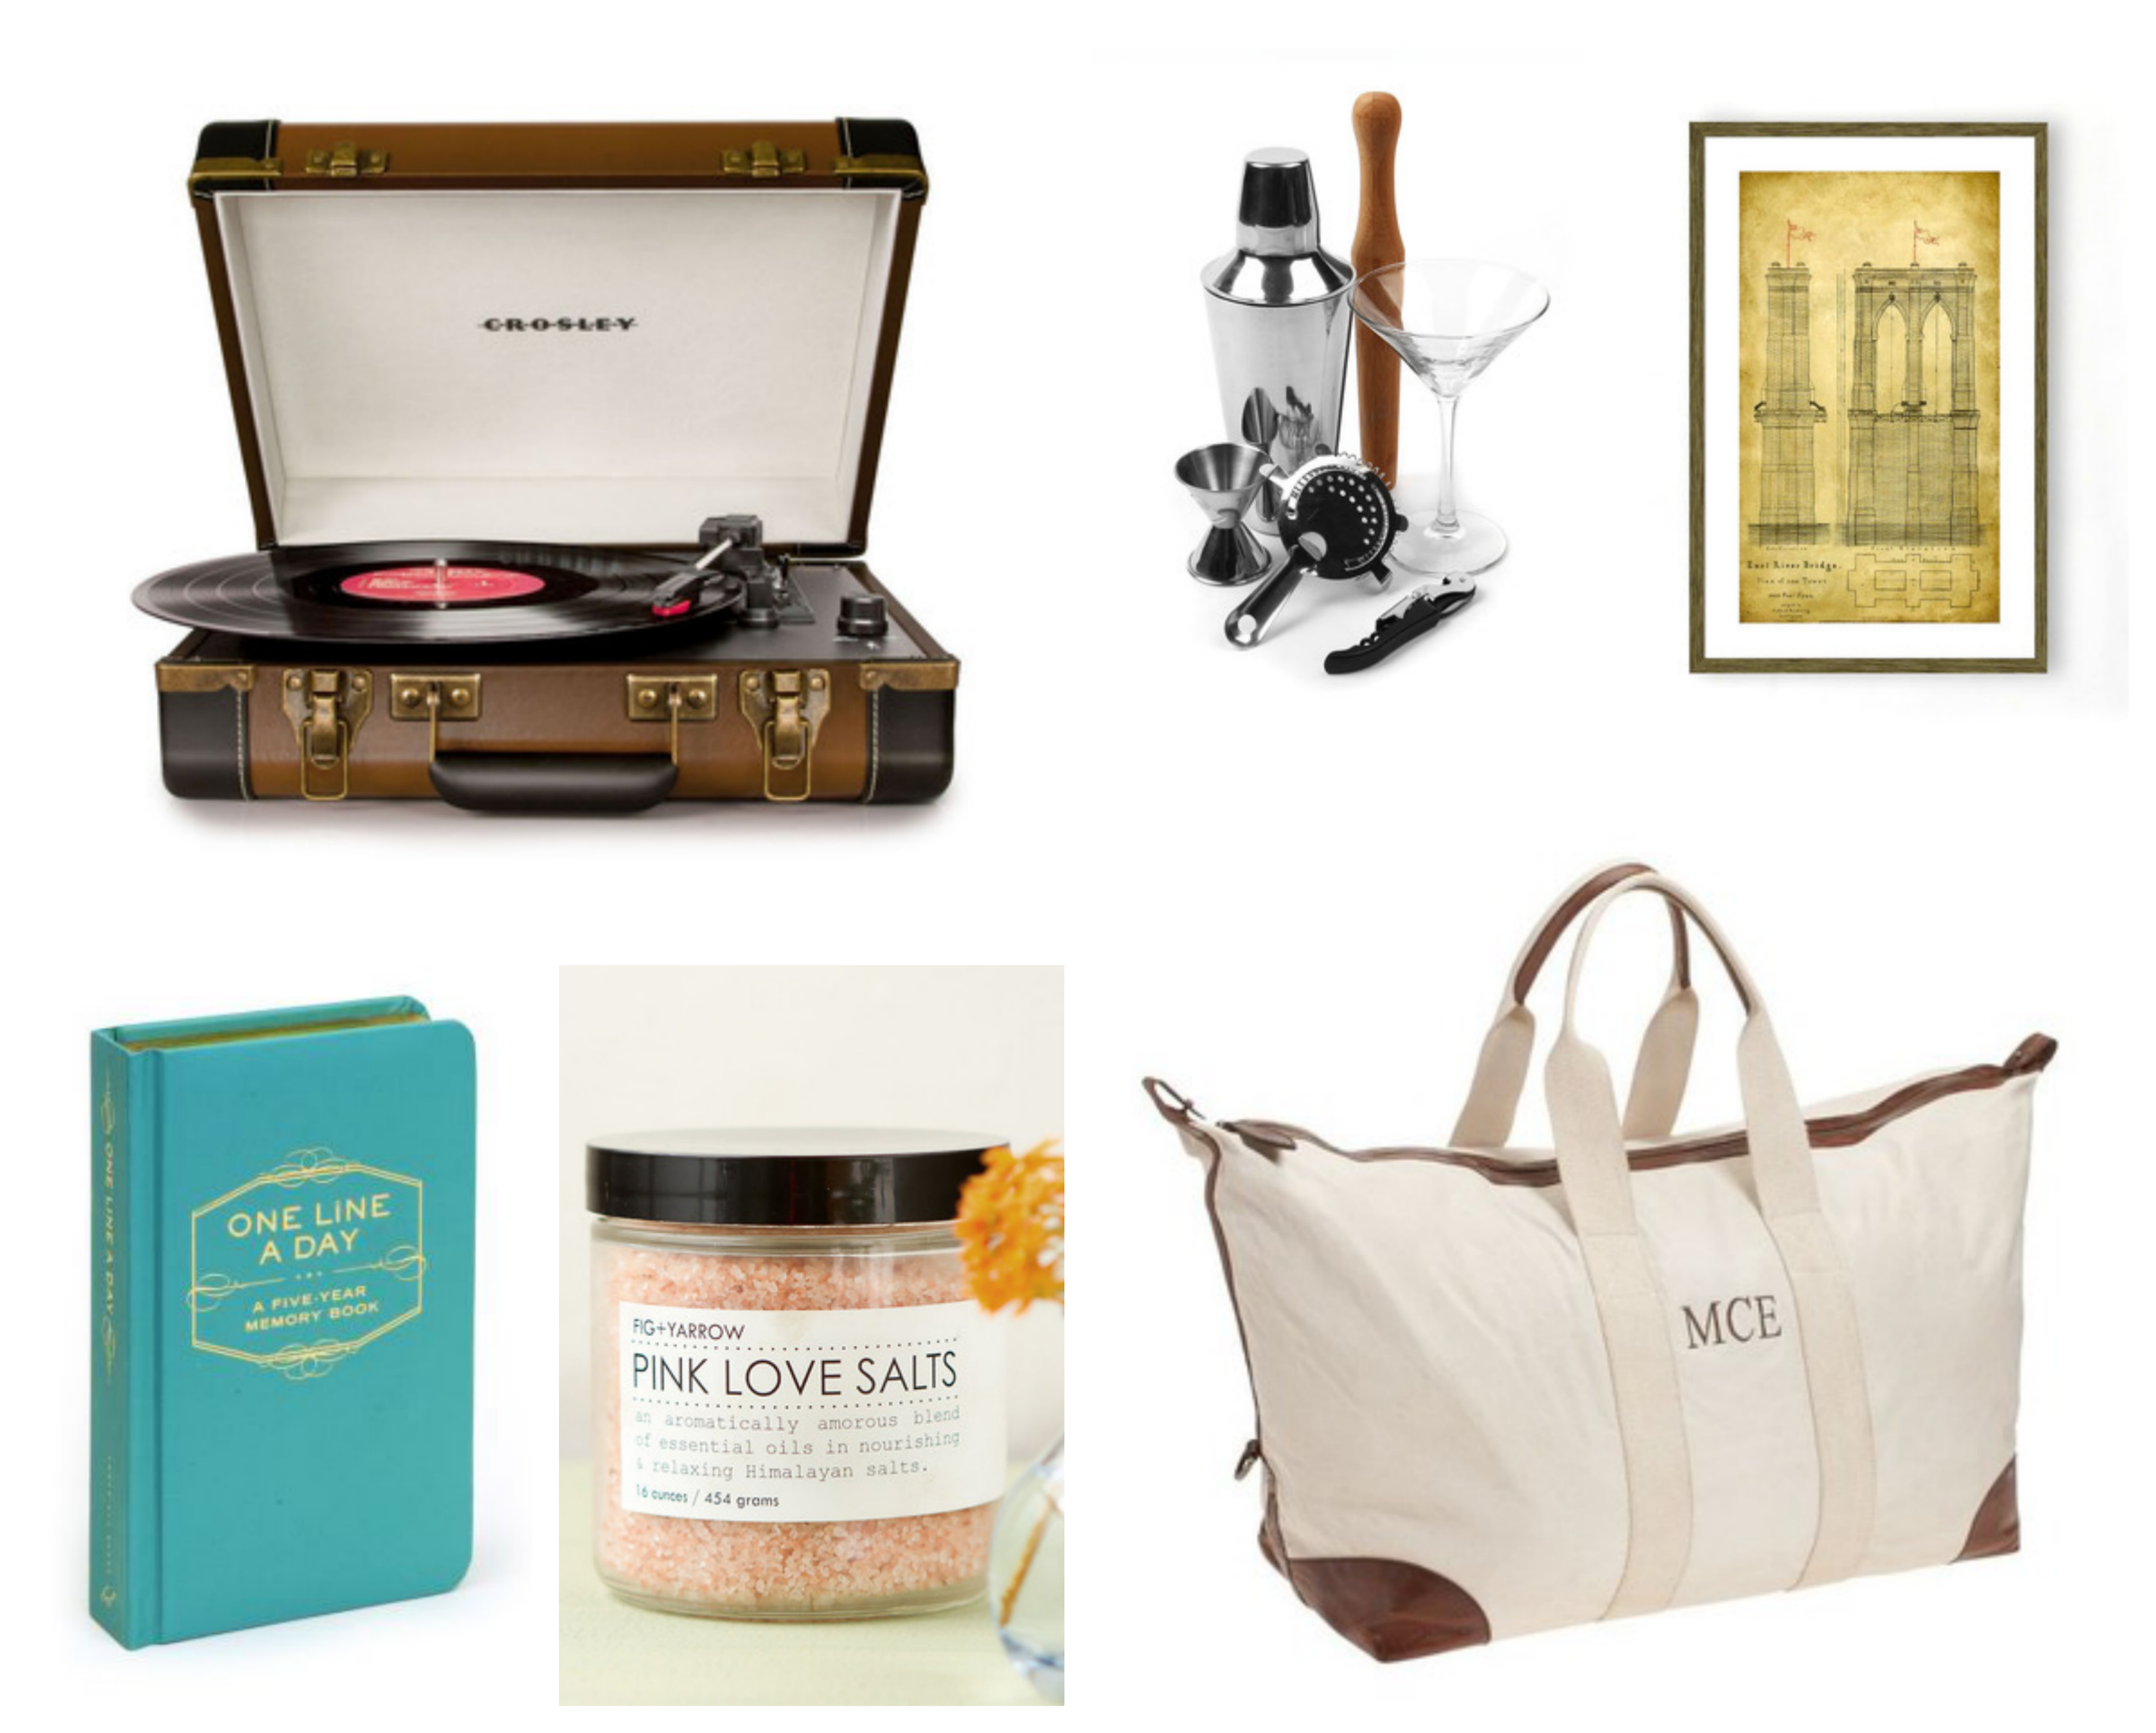 2014-03-03-BlueprintHuffPoCollage1.jpg.jpg  sc 1 st  HuffPost & 10 Wedding Registry Gifts to Keep the Romance Alive in Your Home ...